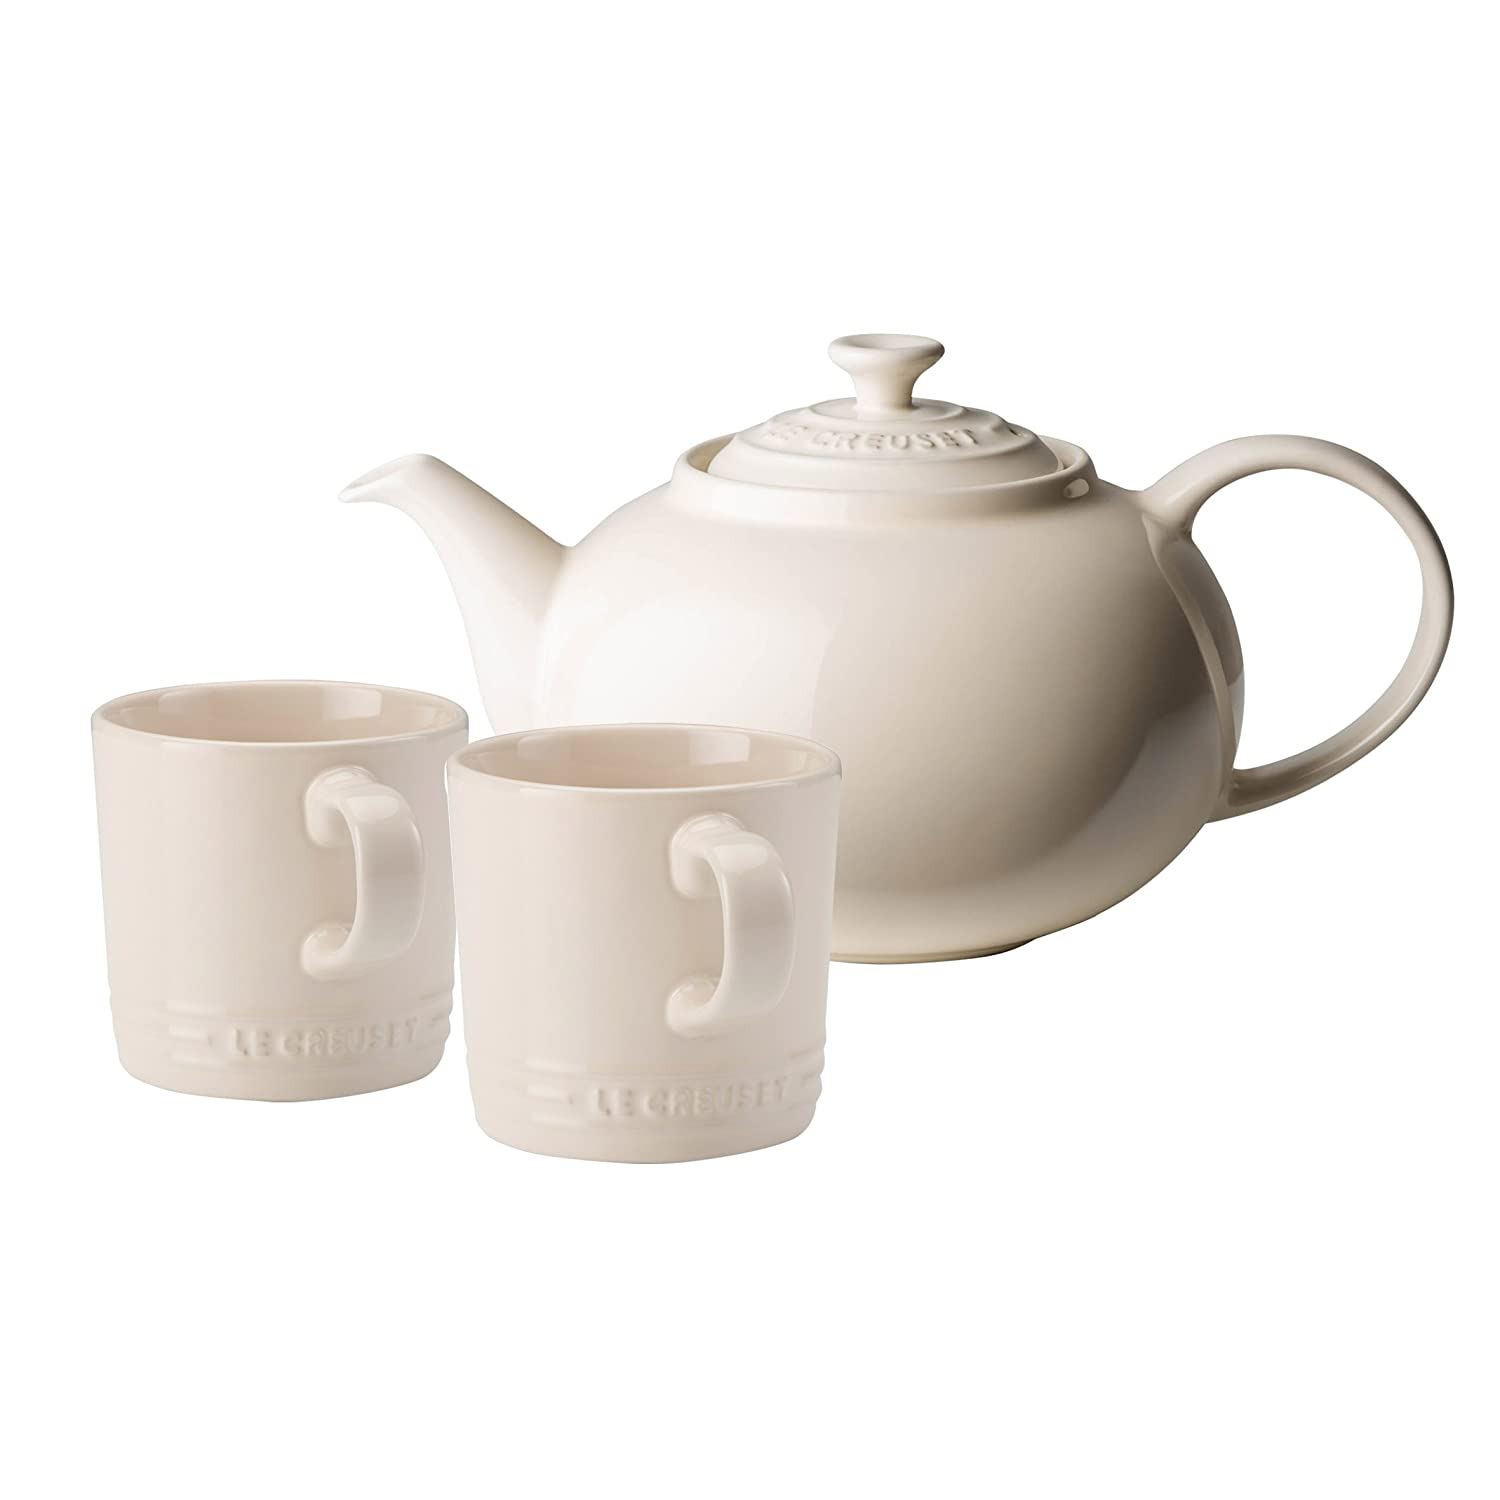 Le Creuset Stoneware Classic Teapot with two Mugs, 1.3 L - Almond